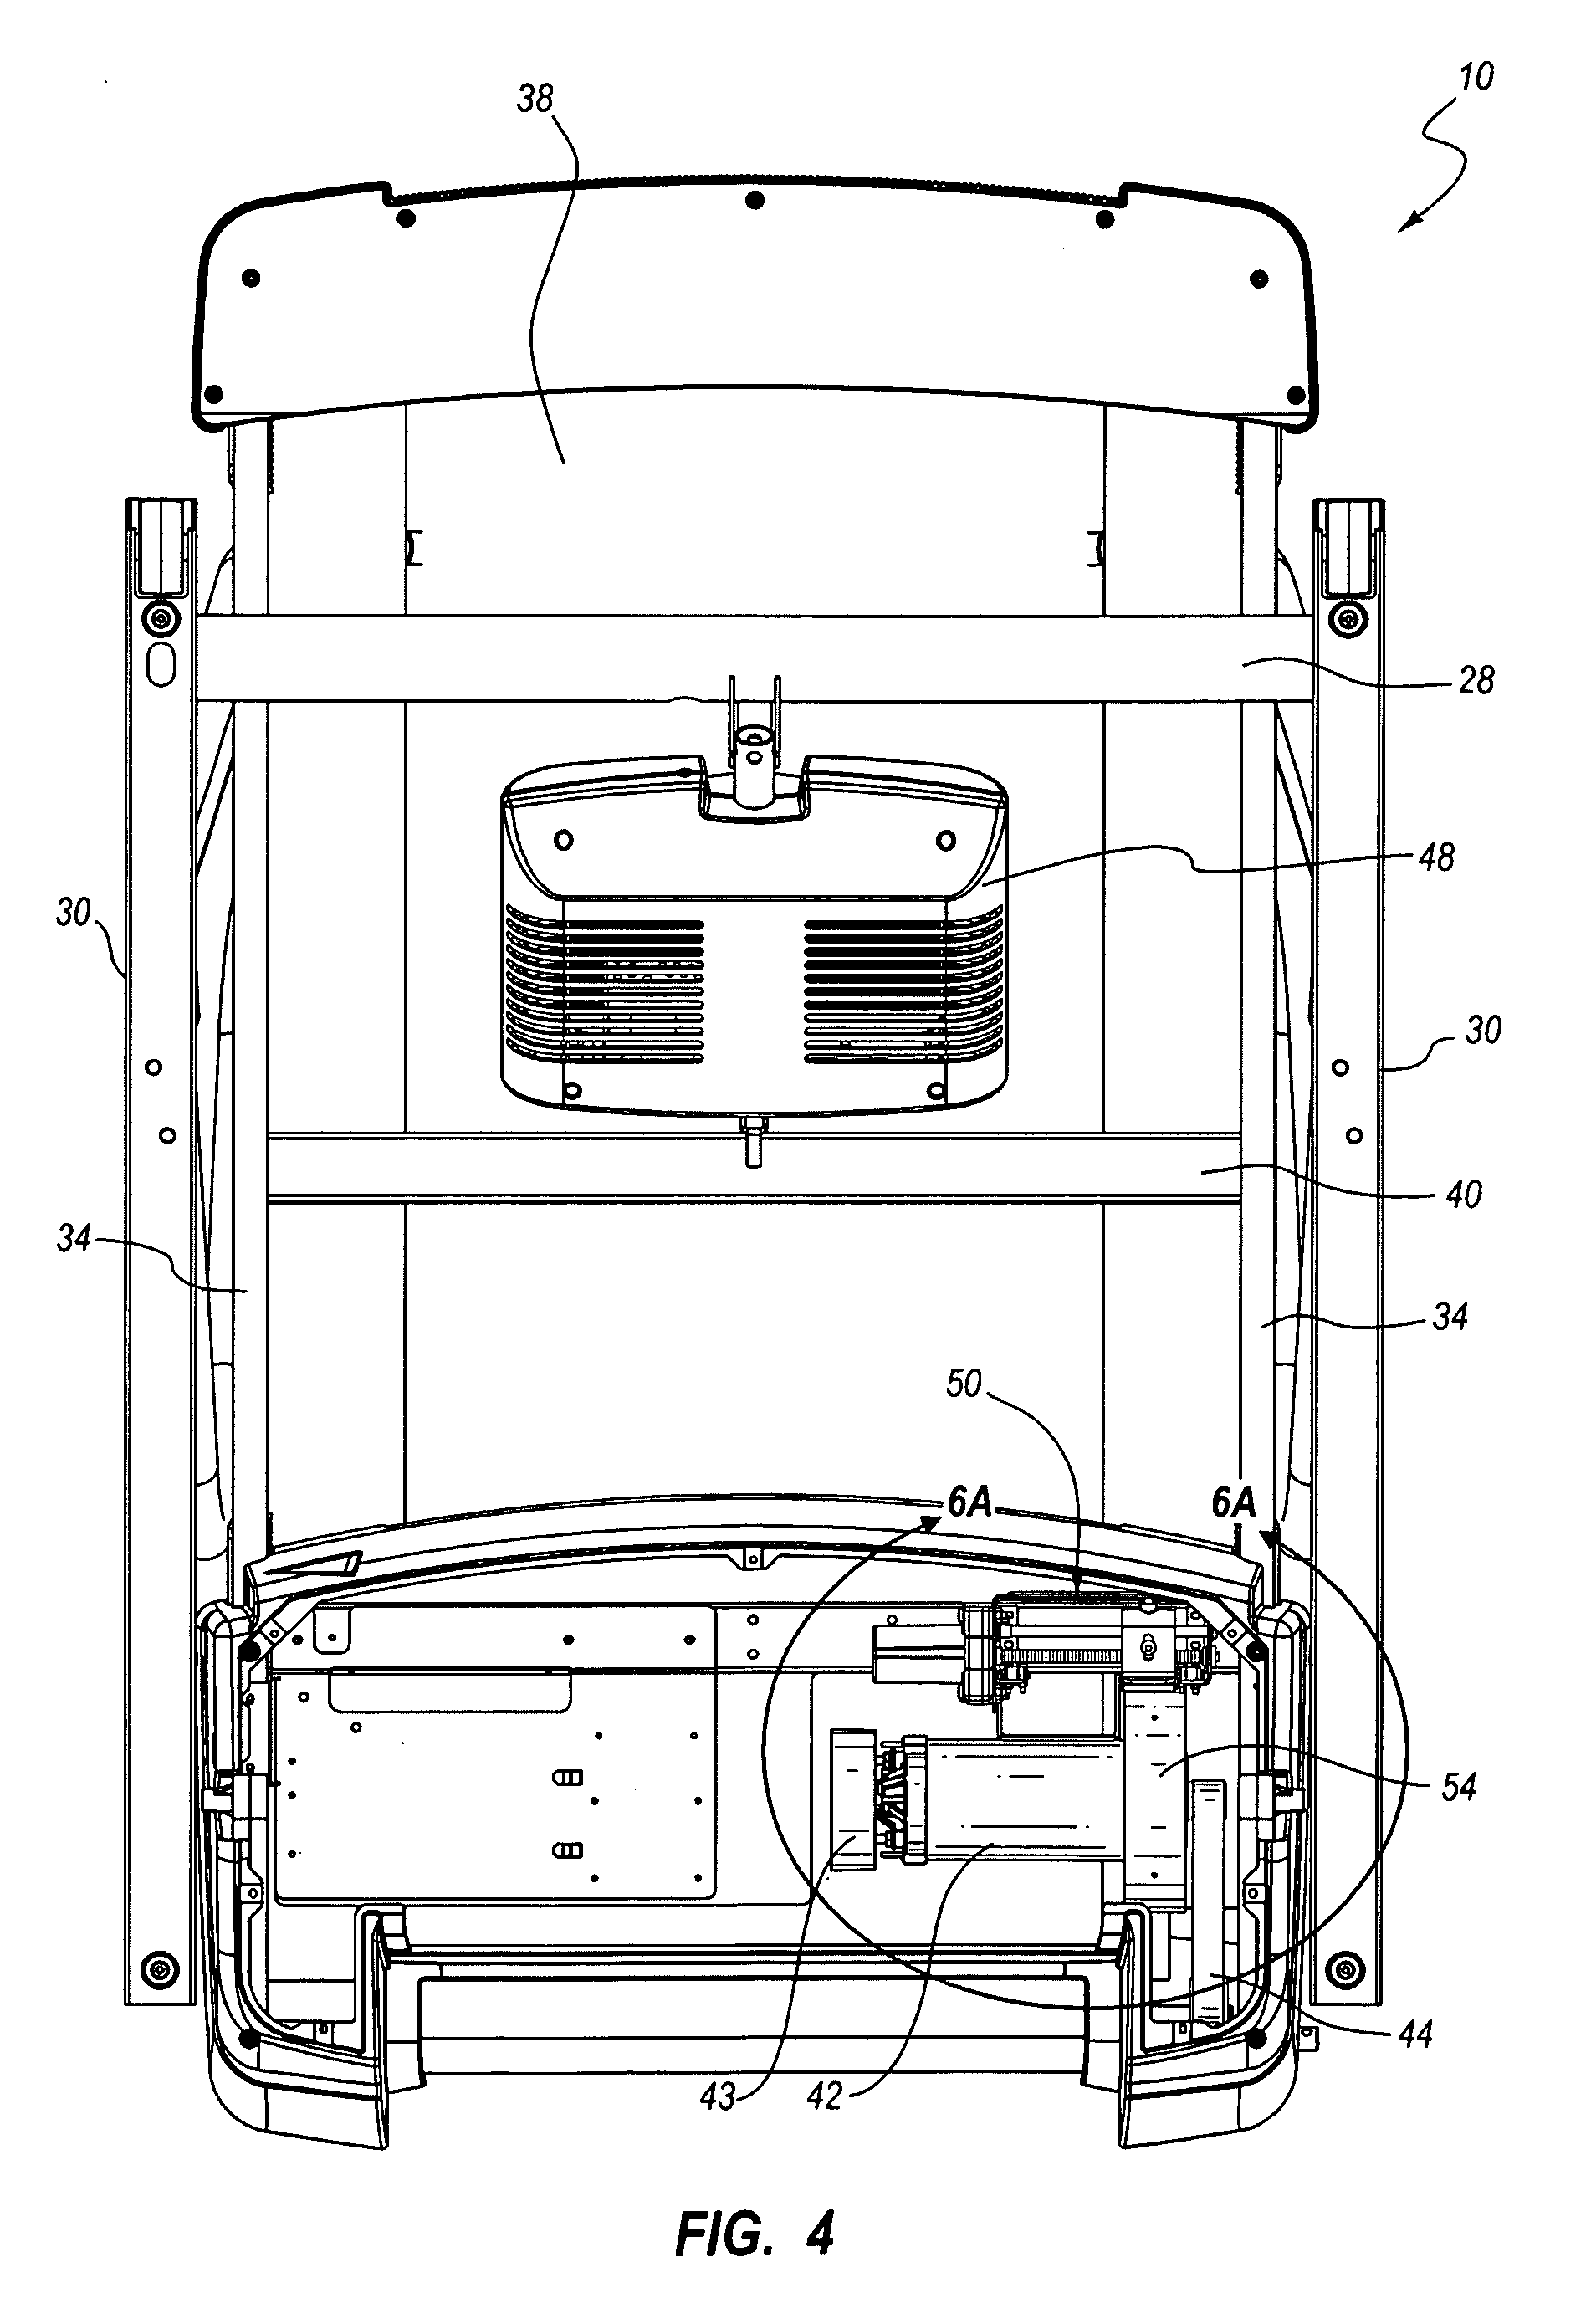 patent us inclining treadmill magnetic braking patent drawing